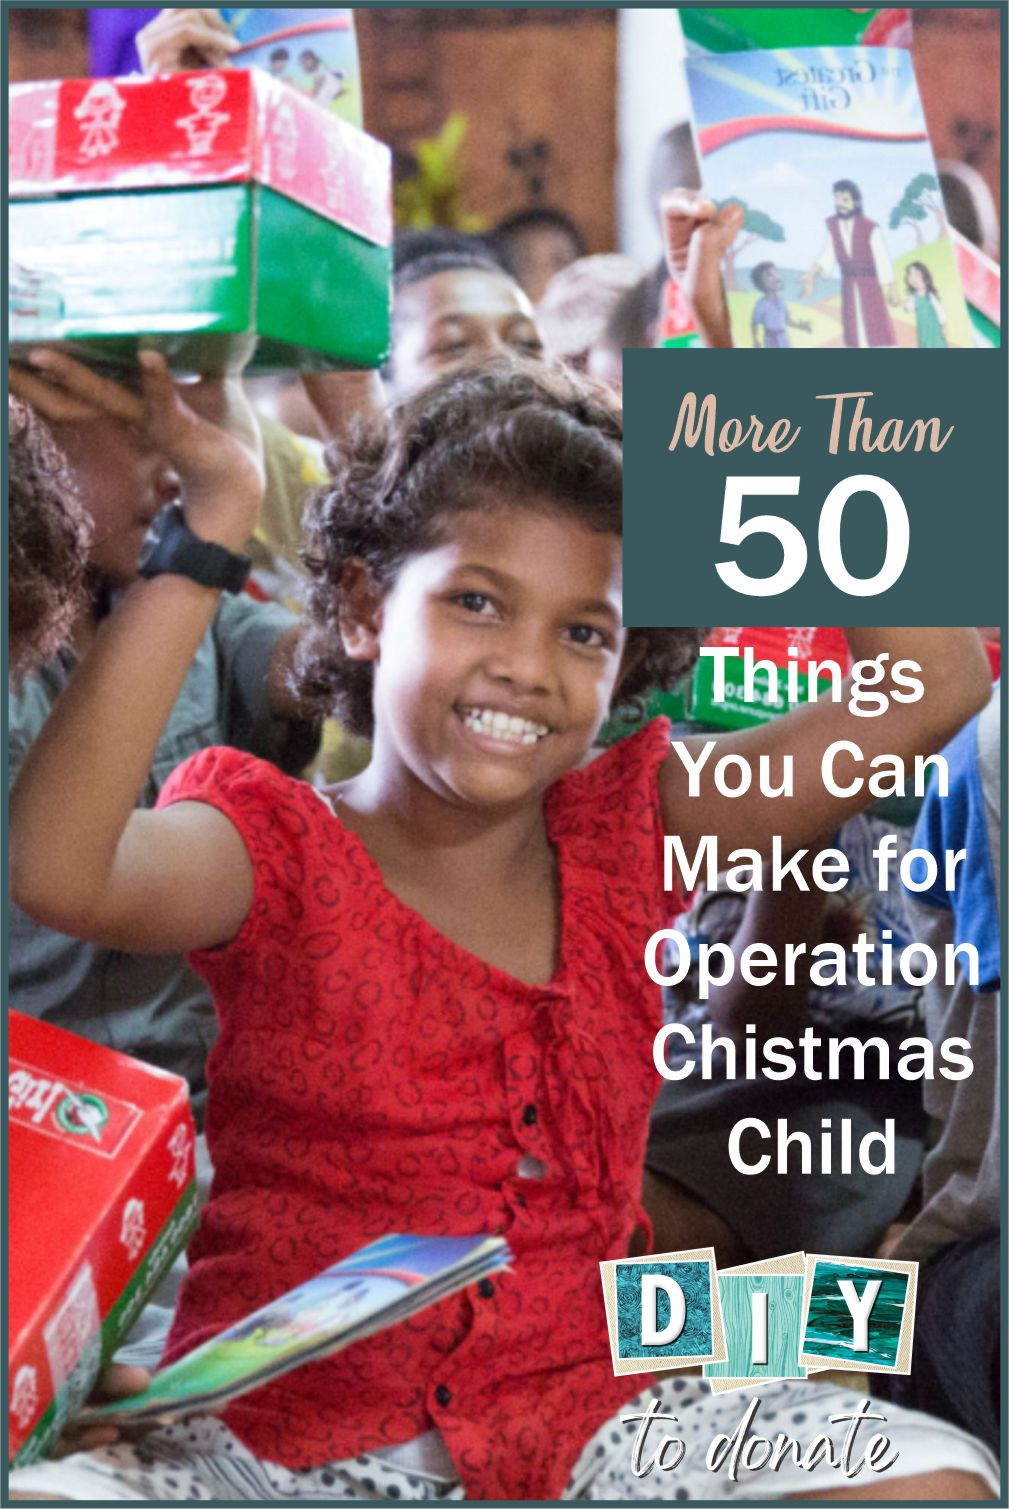 For a special touch include something handmade with your shoebox donation for Operation Christmas Child. We have instructions for more than 50 items!! #diy #diytodonate #diycrafts #diycraftstodonate #handmade #operationchristmaschild #christmasshoeboxes